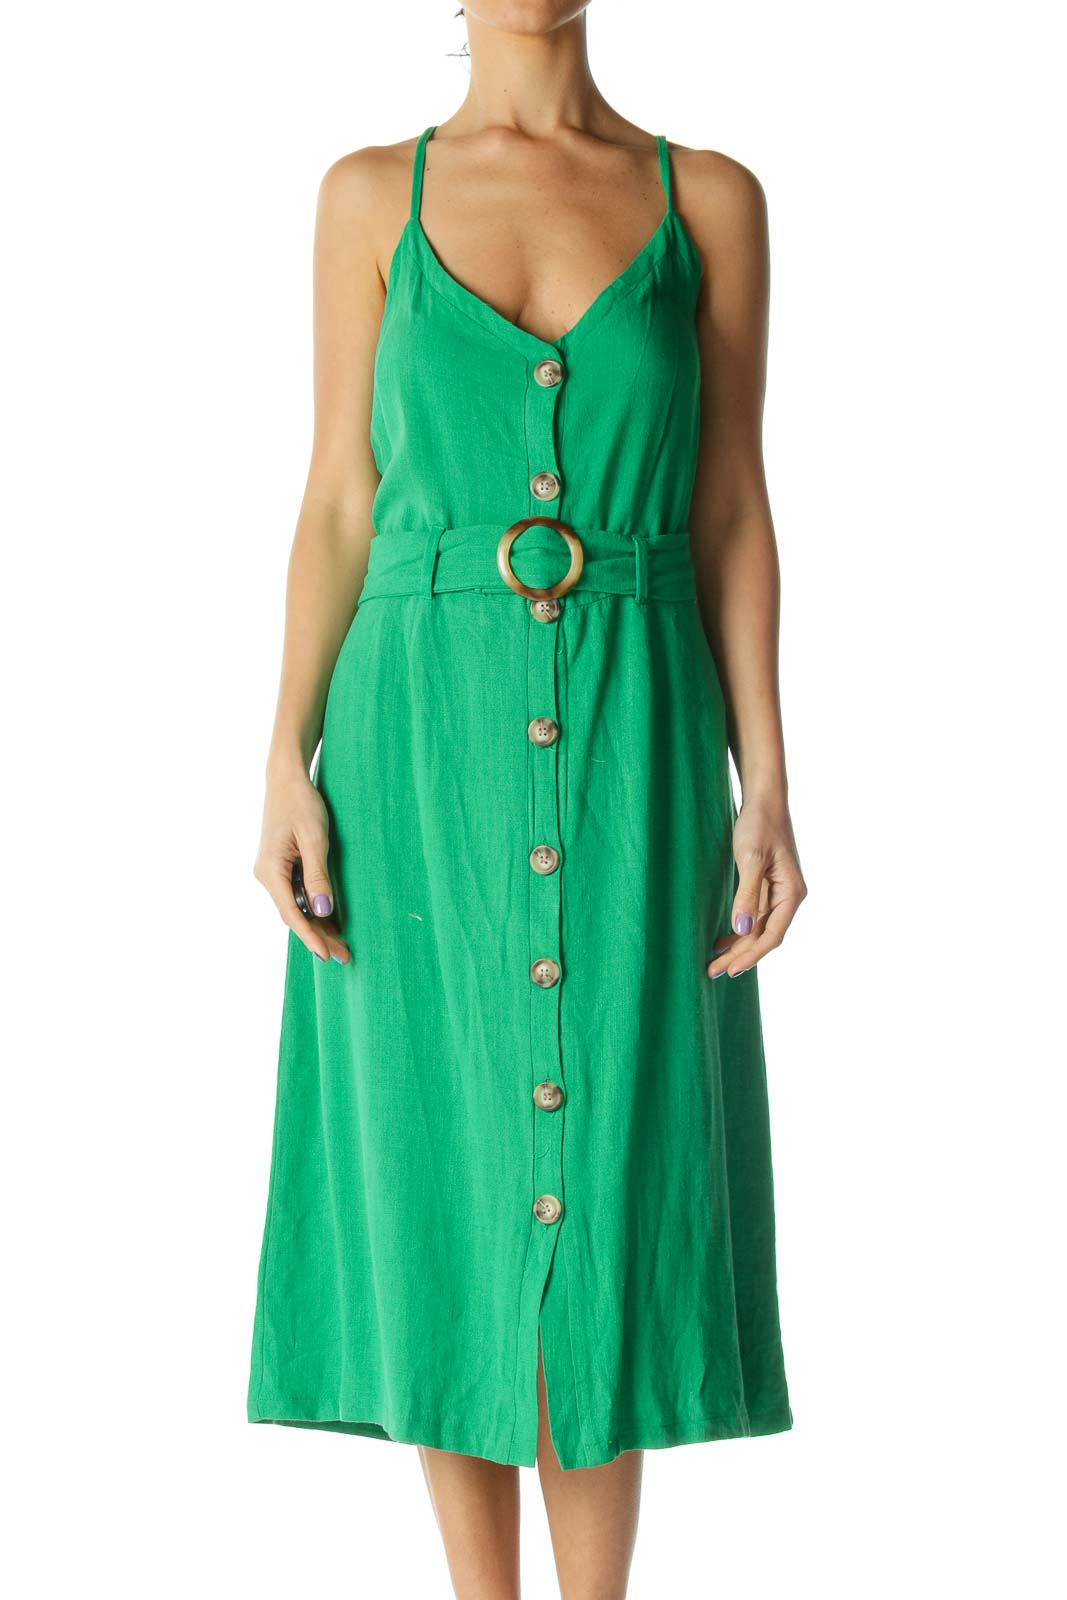 Green Midi Day Dress Front